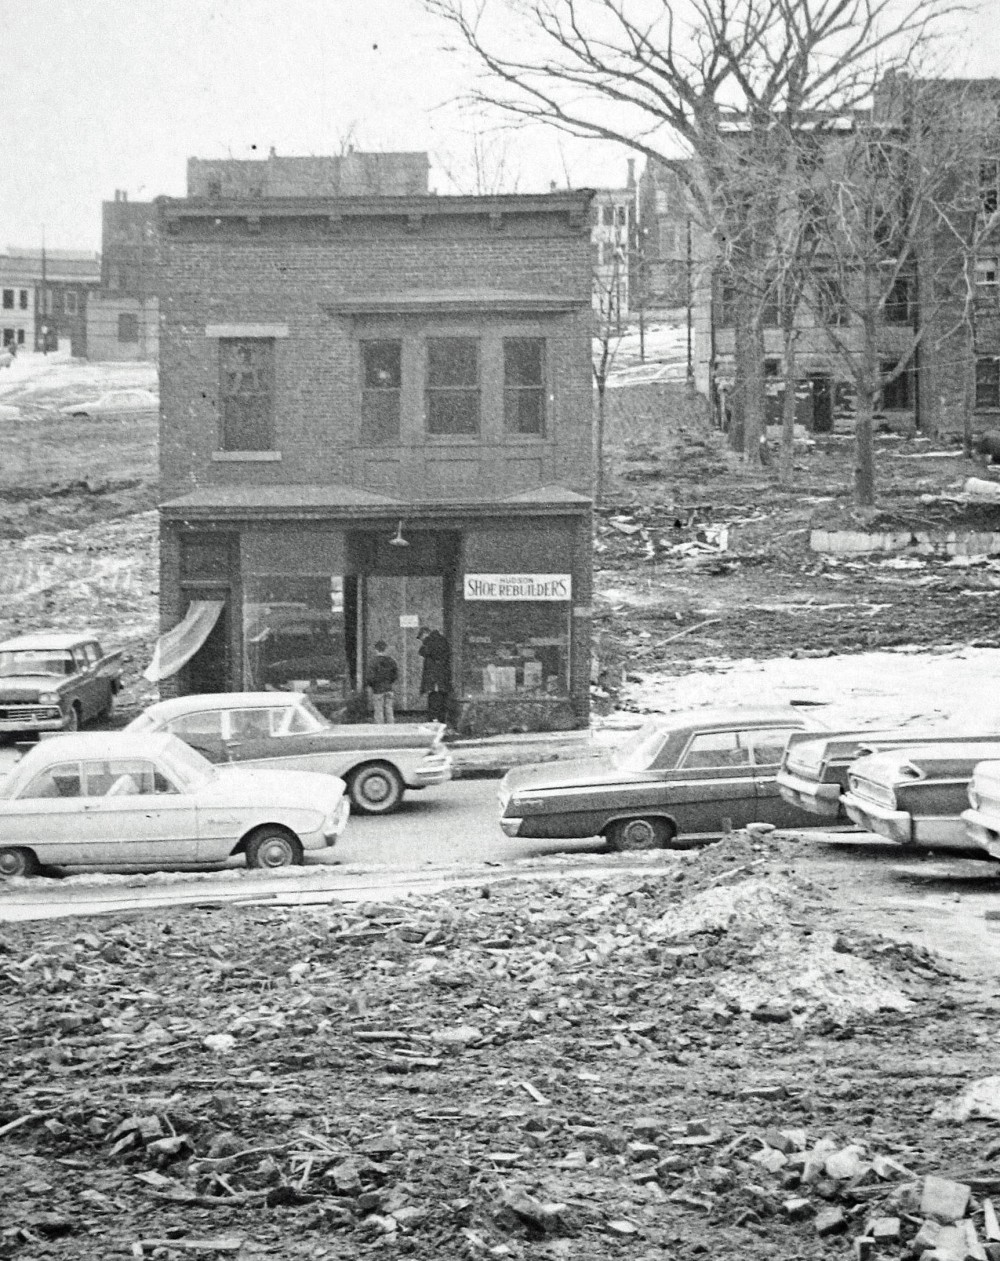 The block has been cleared save for 162 Hudson, February 1964. Albany Institute.